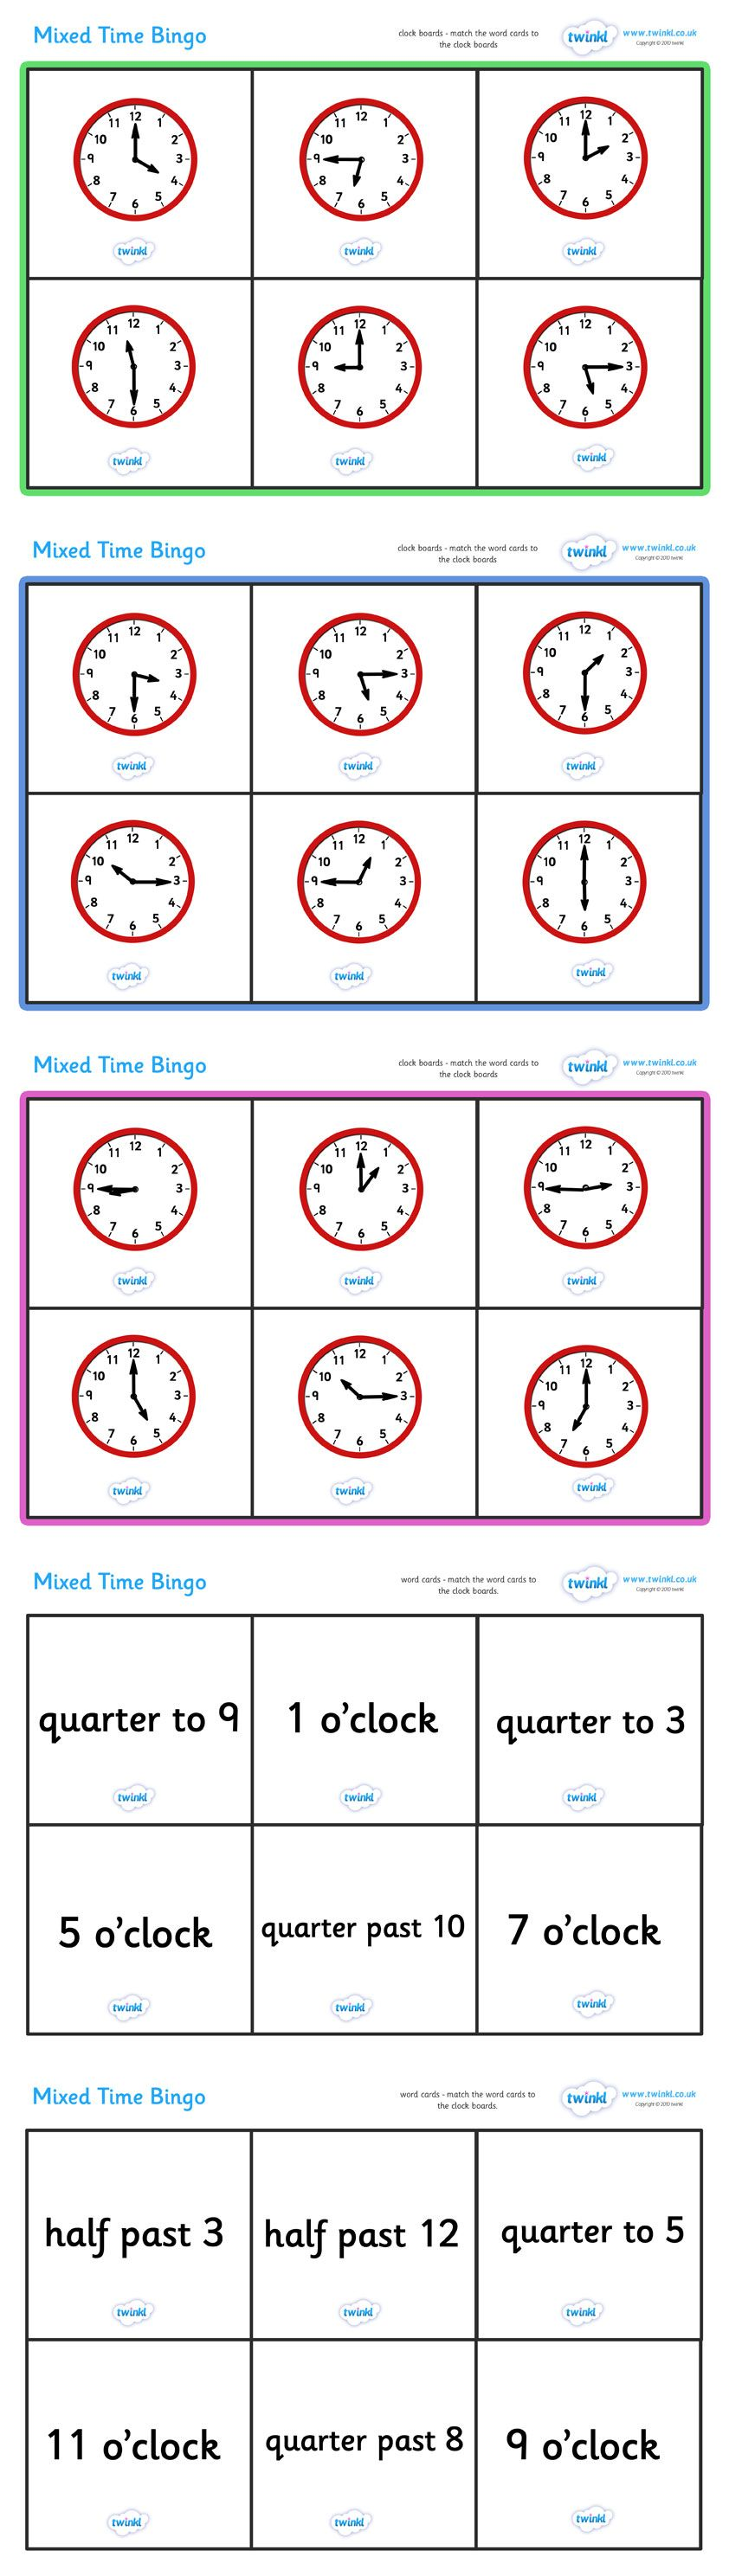 Mixed Time Bingo Pop Over To Our Site At Twinkl And